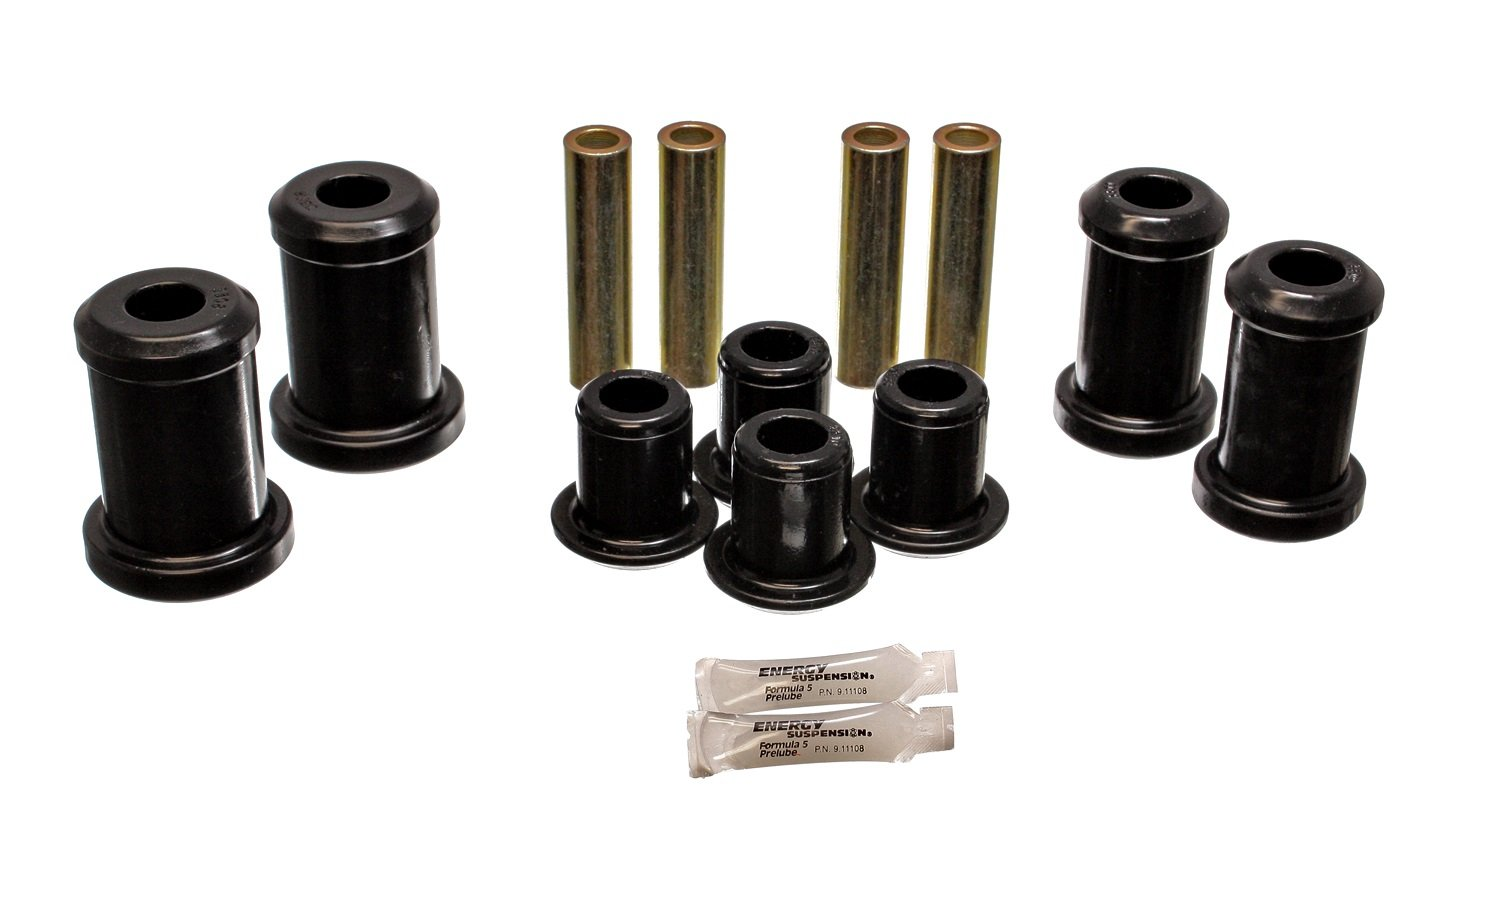 Energy Suspension 4.3145G Front Control Arm Bushing Set for Ford